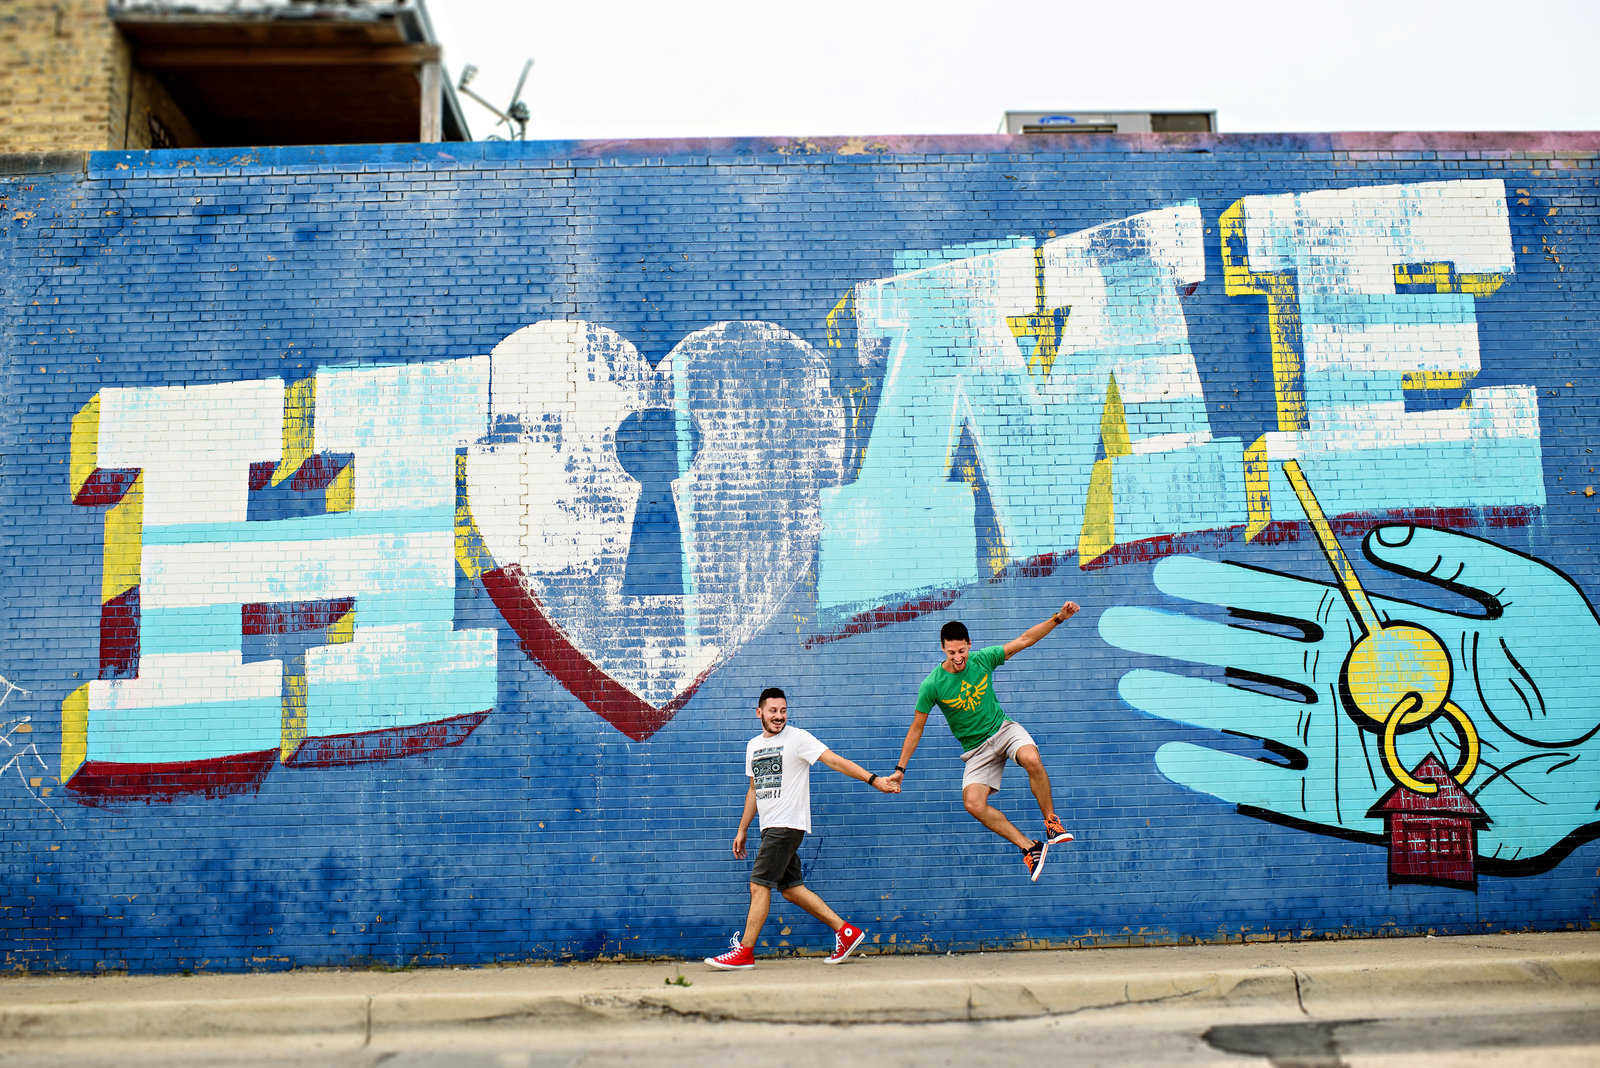 Two grooms jump for joy in front of a graffiti mural in Chicago.